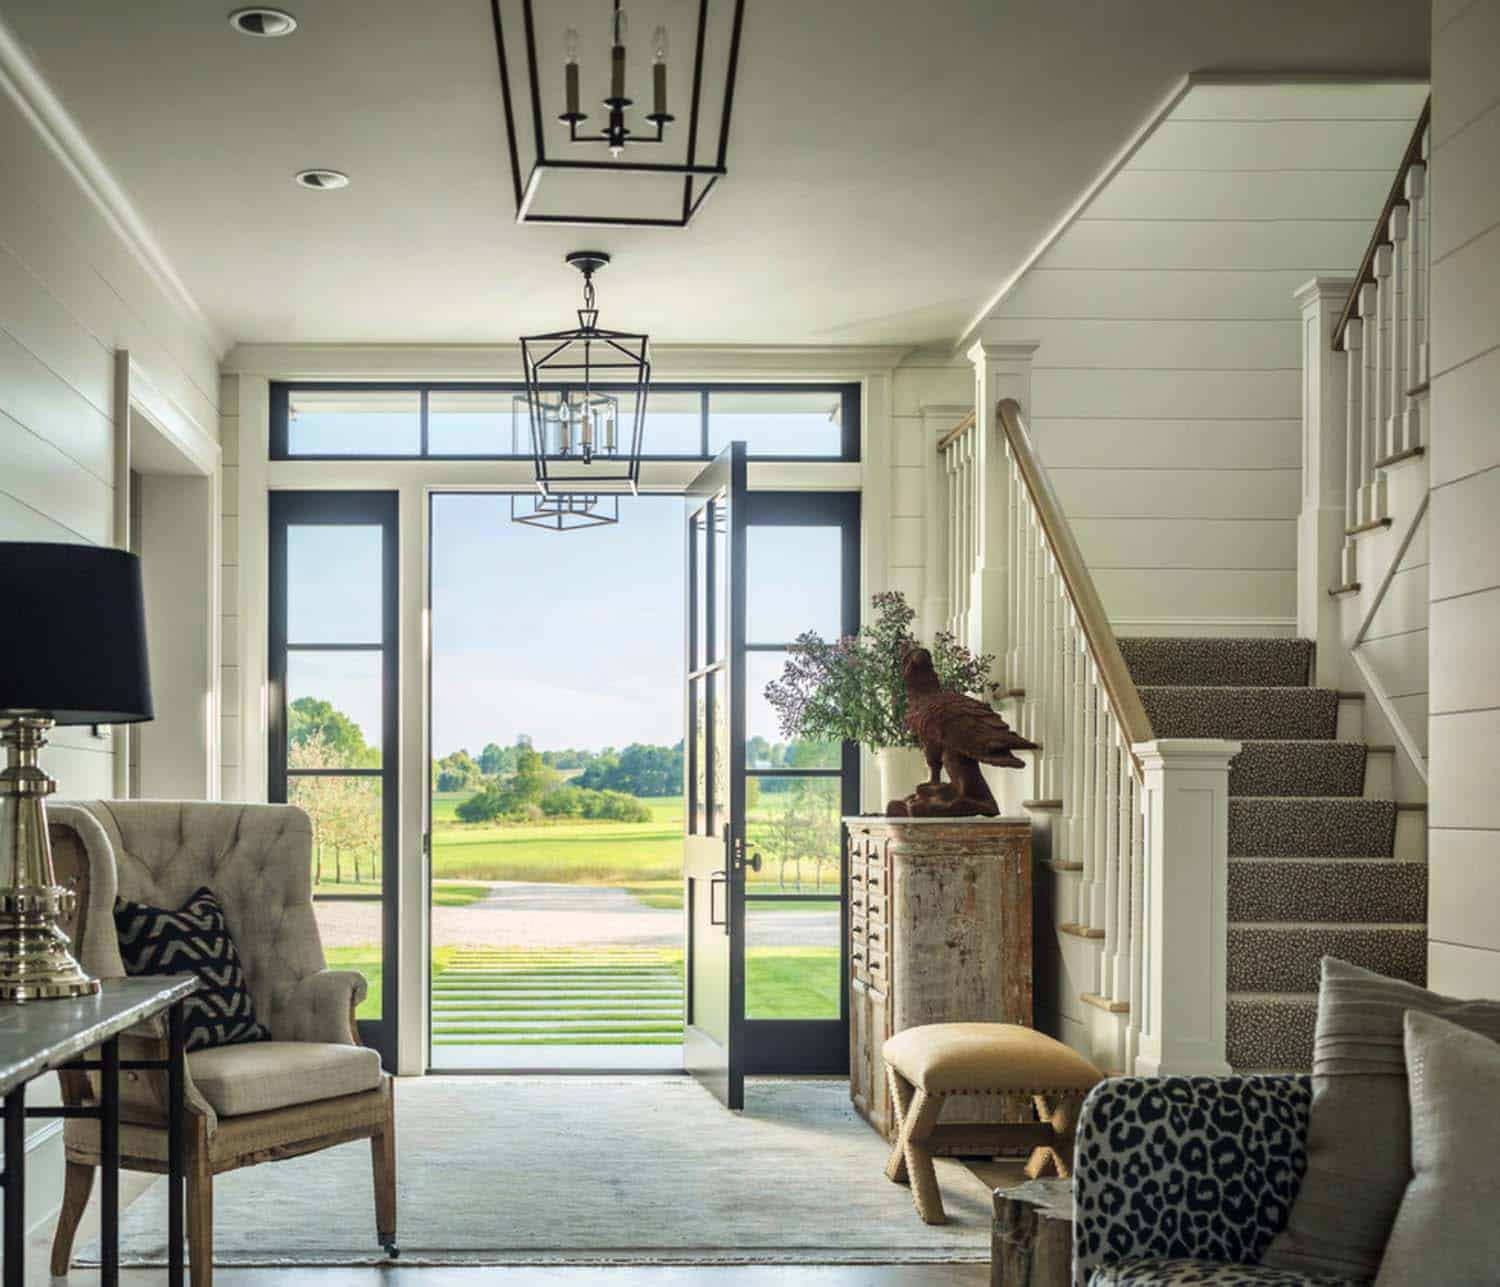 Modern Farmhouse Interior Design: Traditional Farmhouse Style Dwelling In Vermont With A